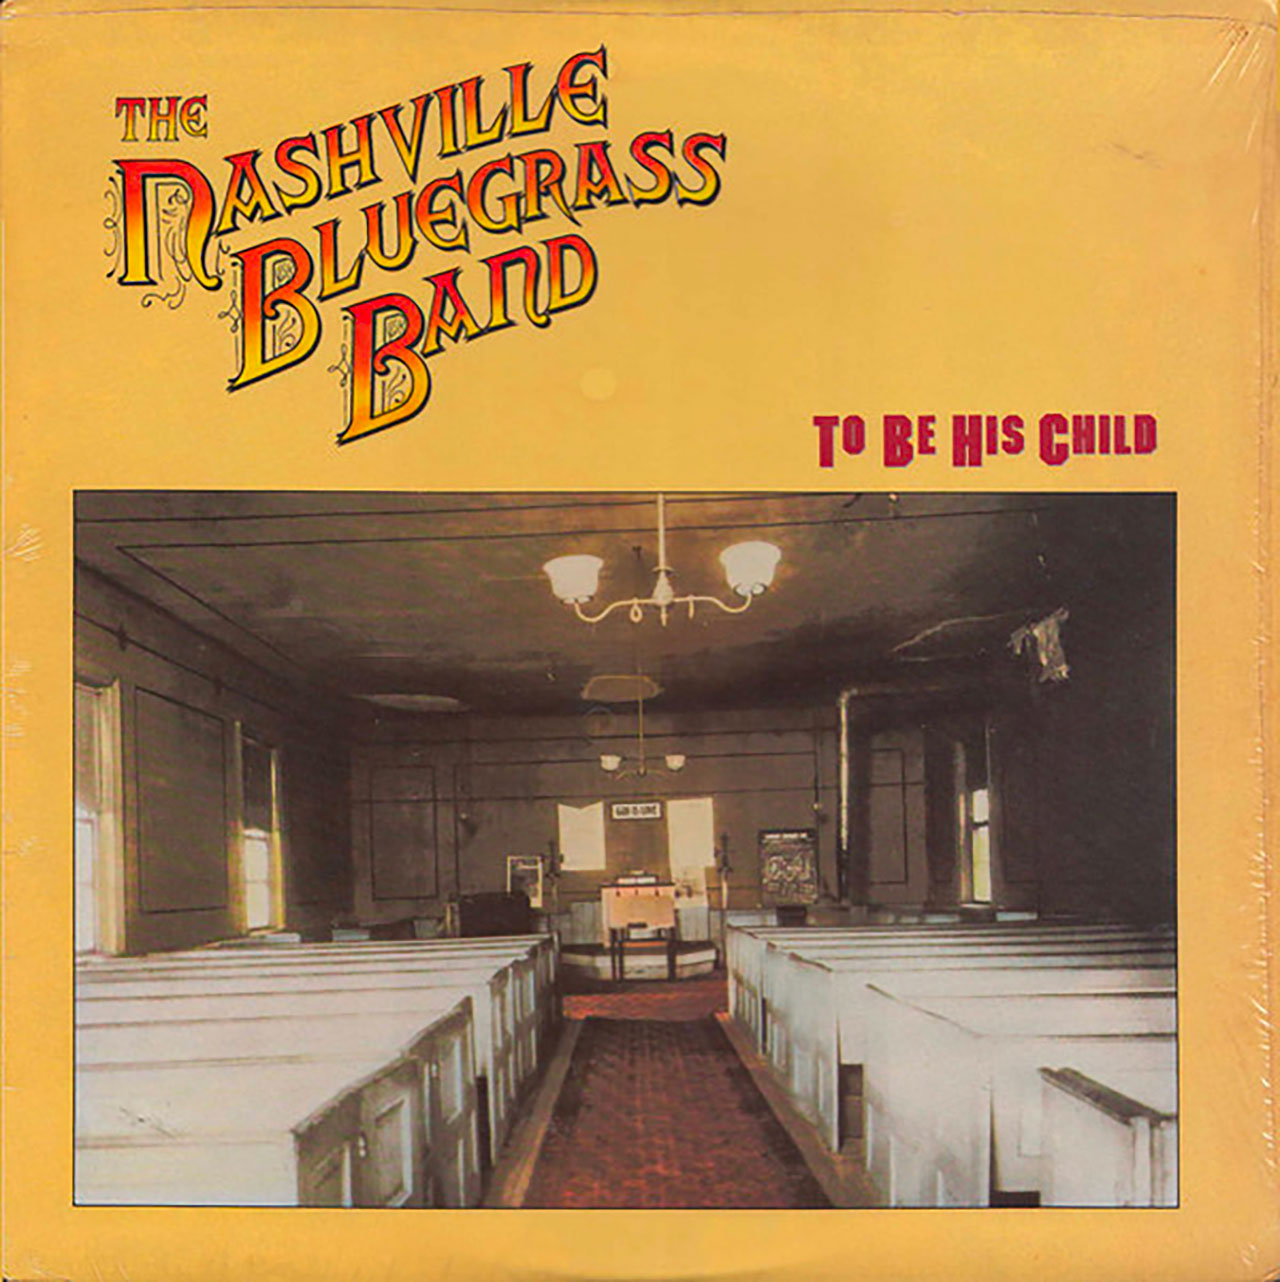 The Nashville Bluegrass Band – To Be His Child cover album